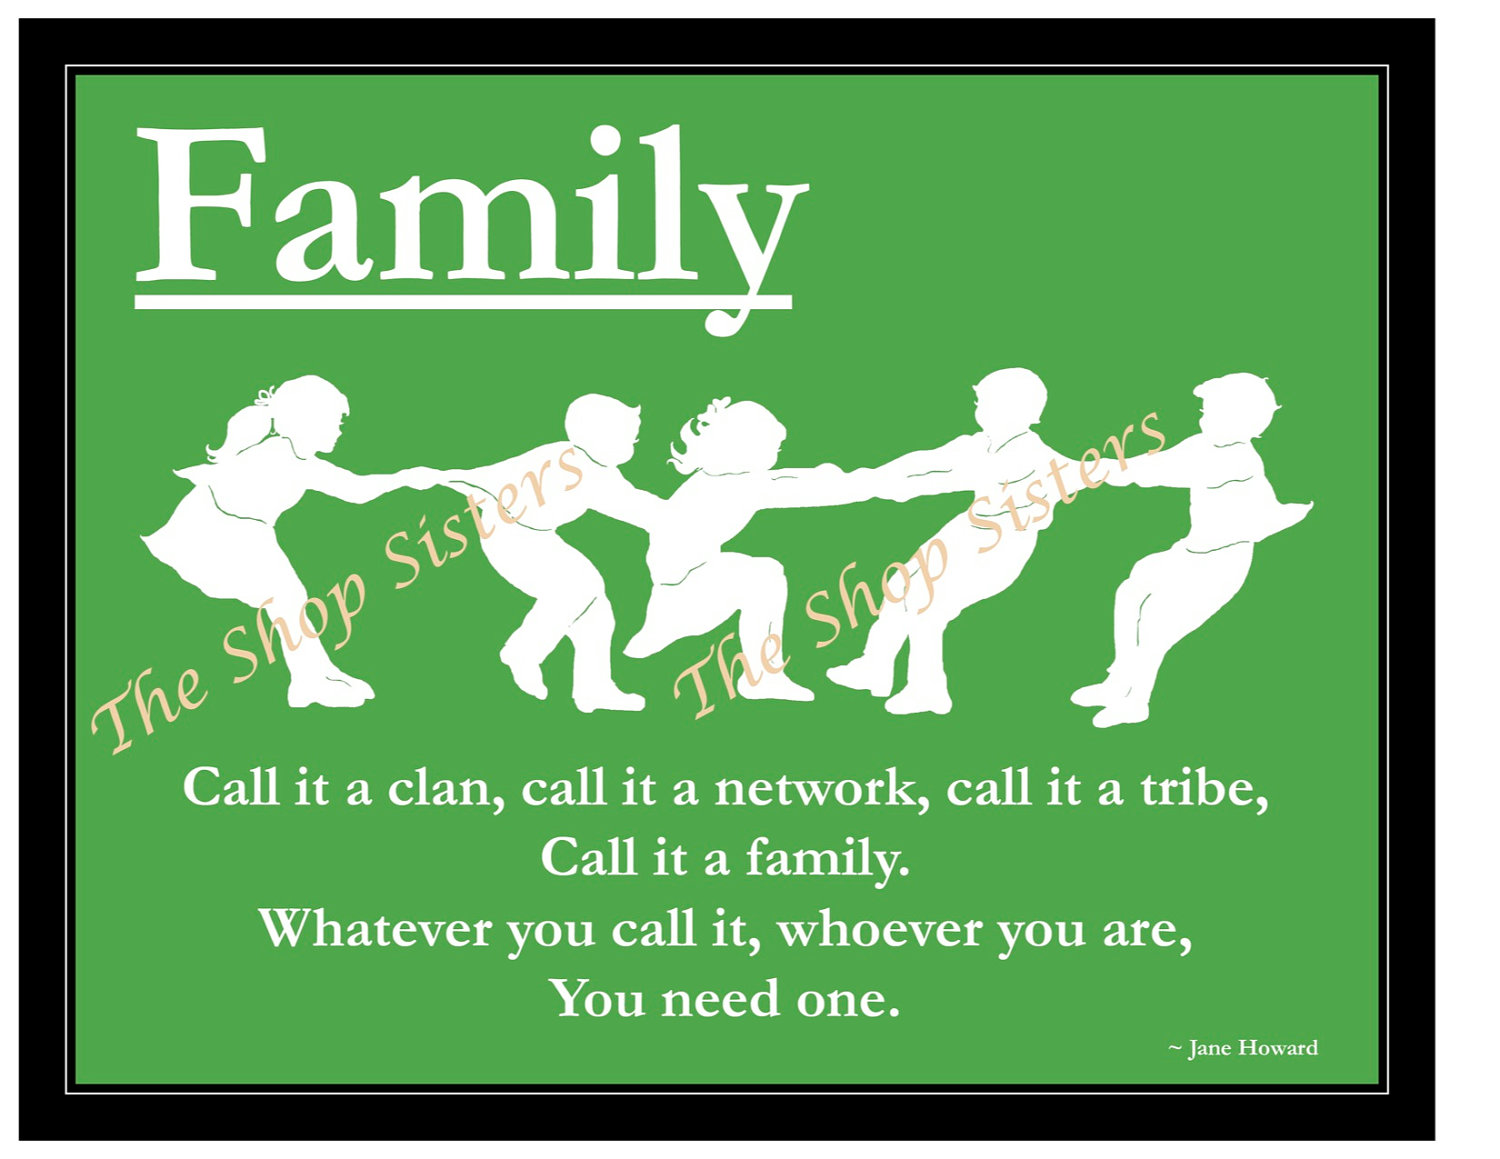 Family Quotes And Sayings: Black Family Reunion Quotes. QuotesGram